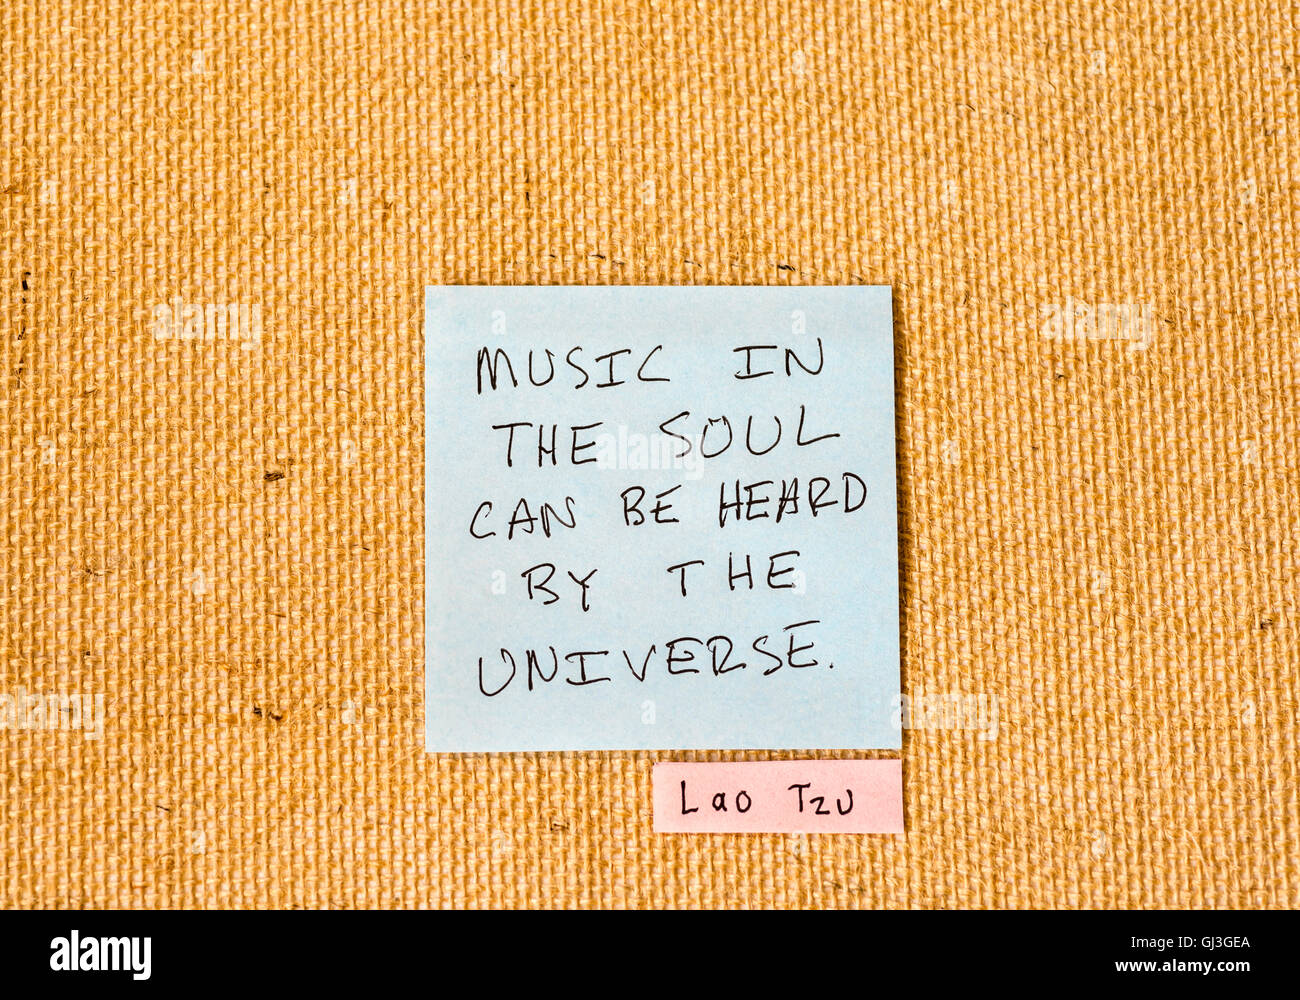 Lao Tzu quote written on sticky notes on a burlap background. - Stock Image